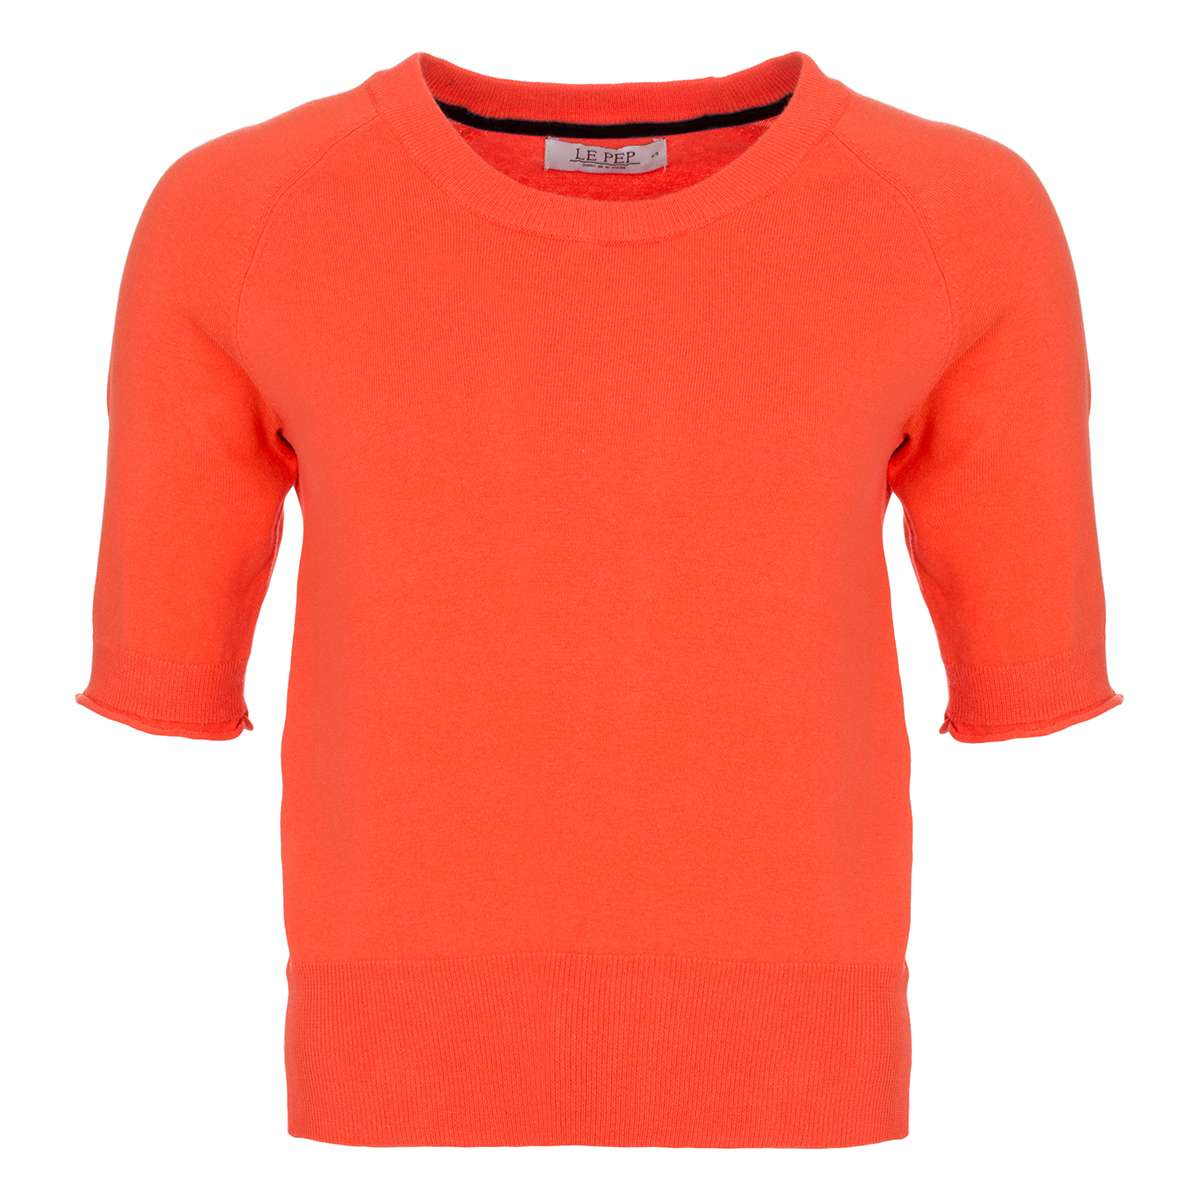 Top Anky Hot Coral